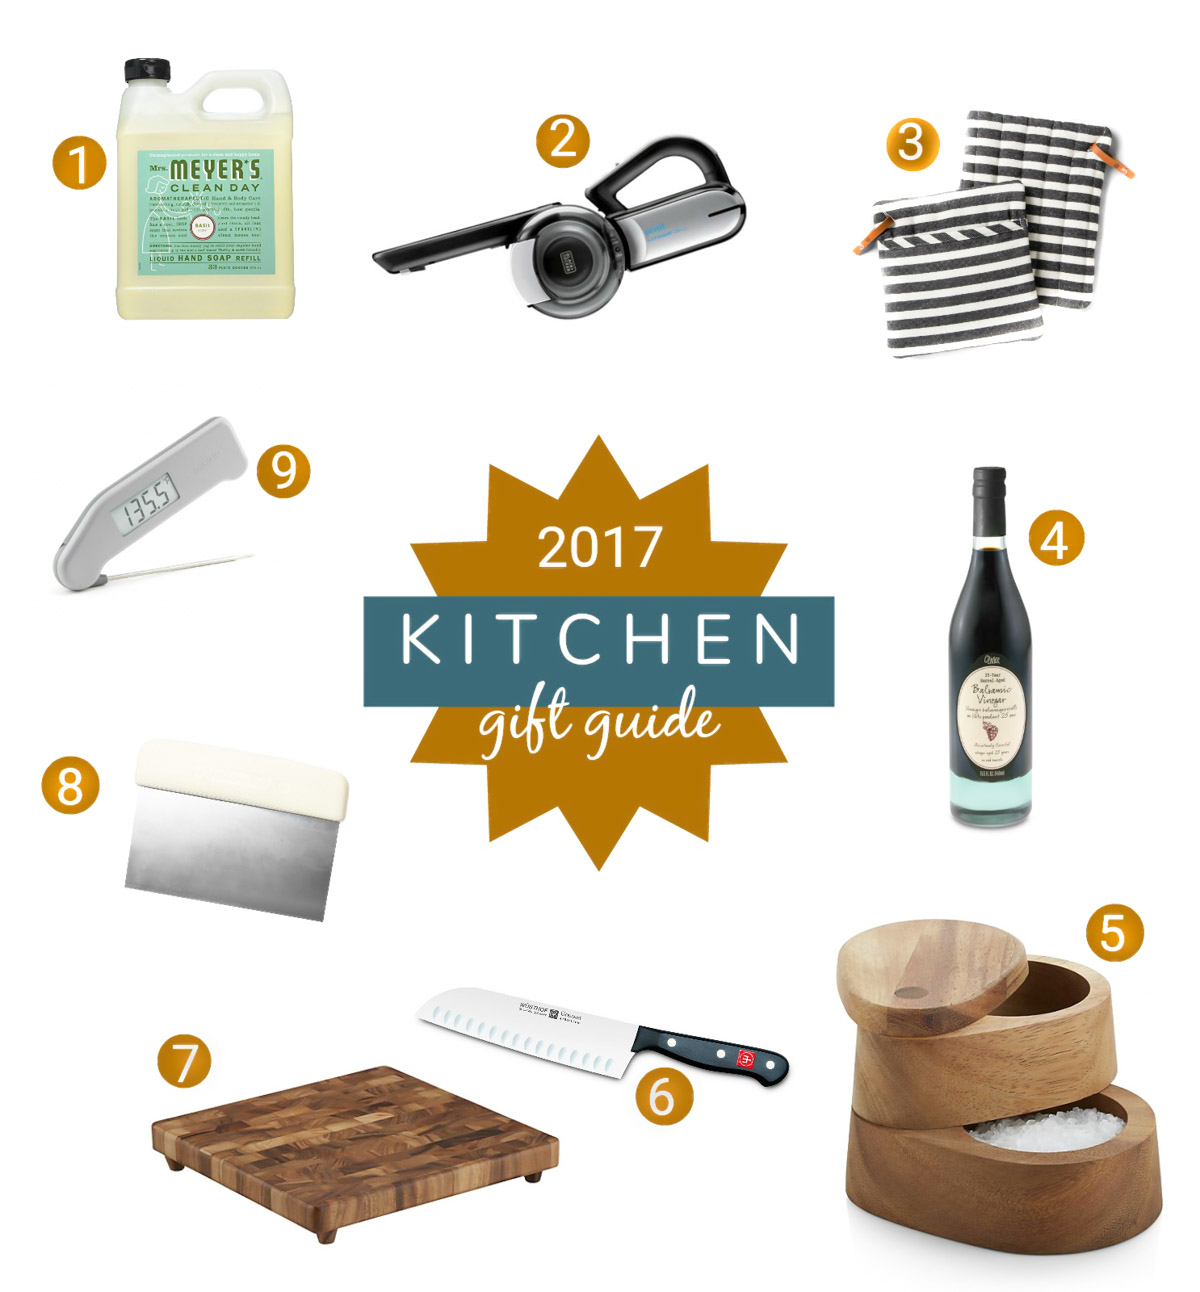 It's that time of year again where gift ideas can be super helpful, especially if you are trying to get a head start on your holiday to do list!